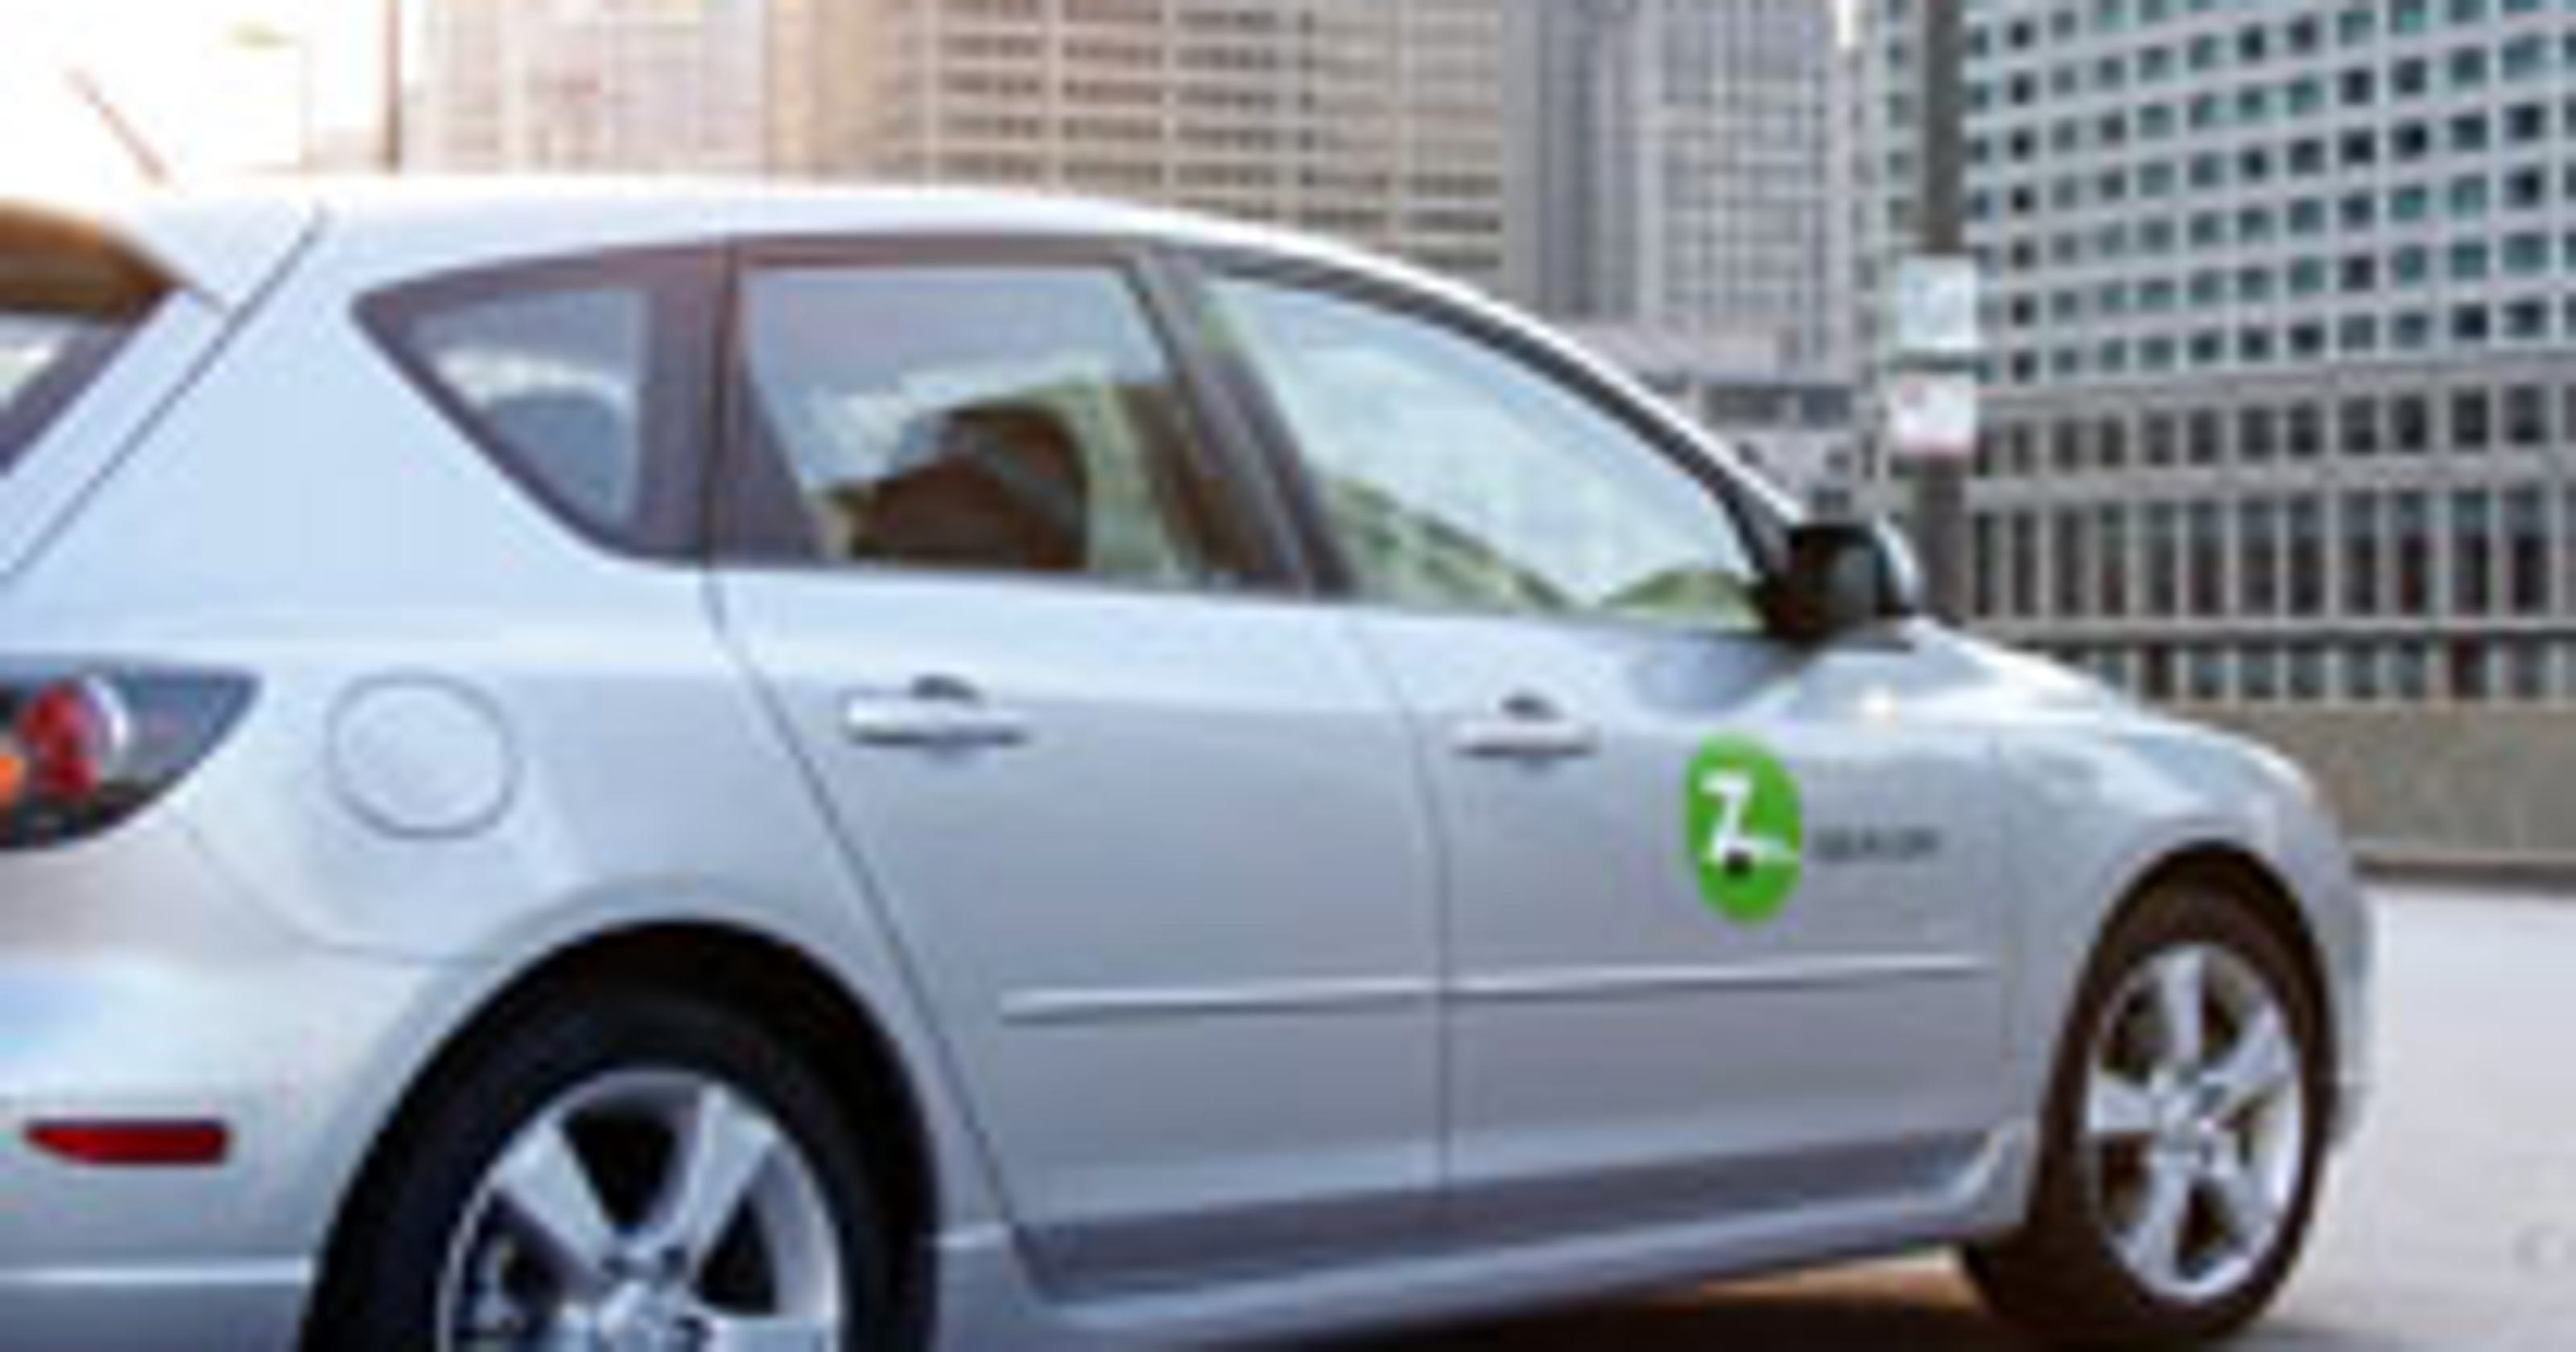 zipcars now available at westchester county airport